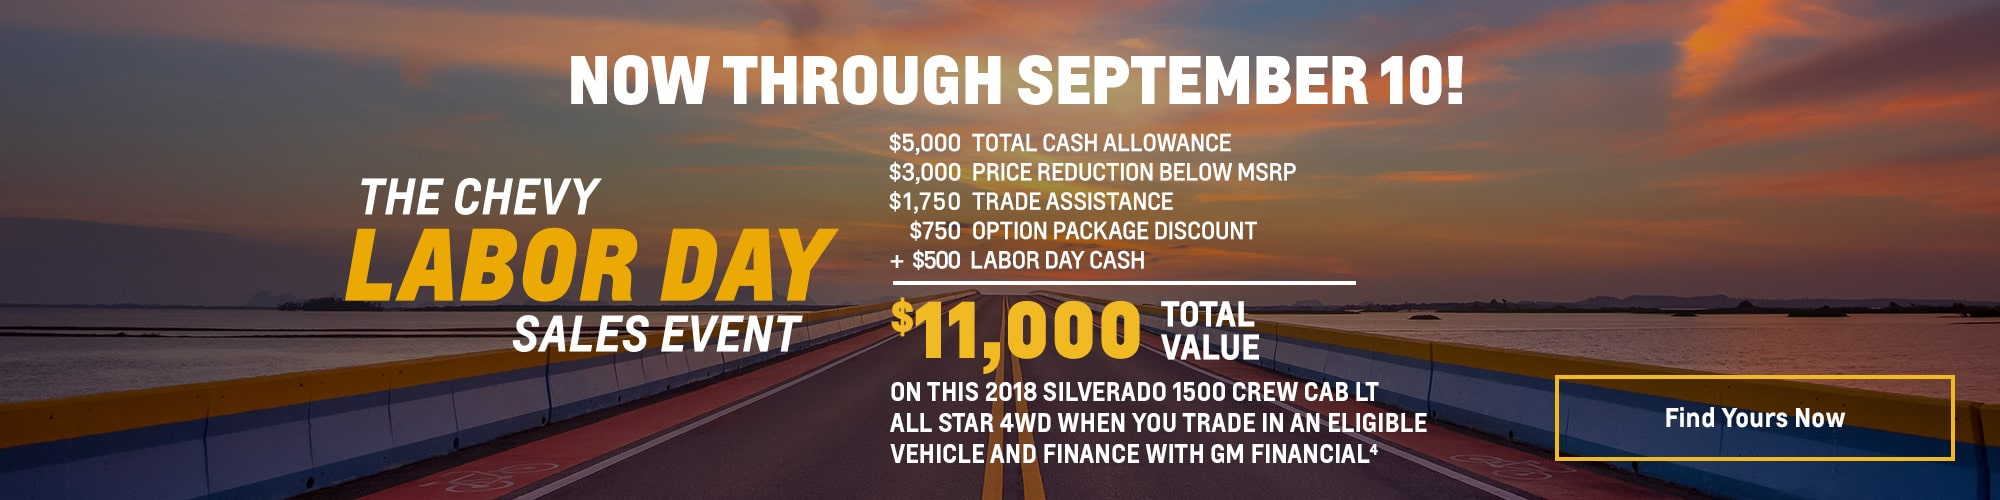 """ Labor Day Offers: Silverado 1500 Crew Cab LT All Star - $11,000 Total Value"""